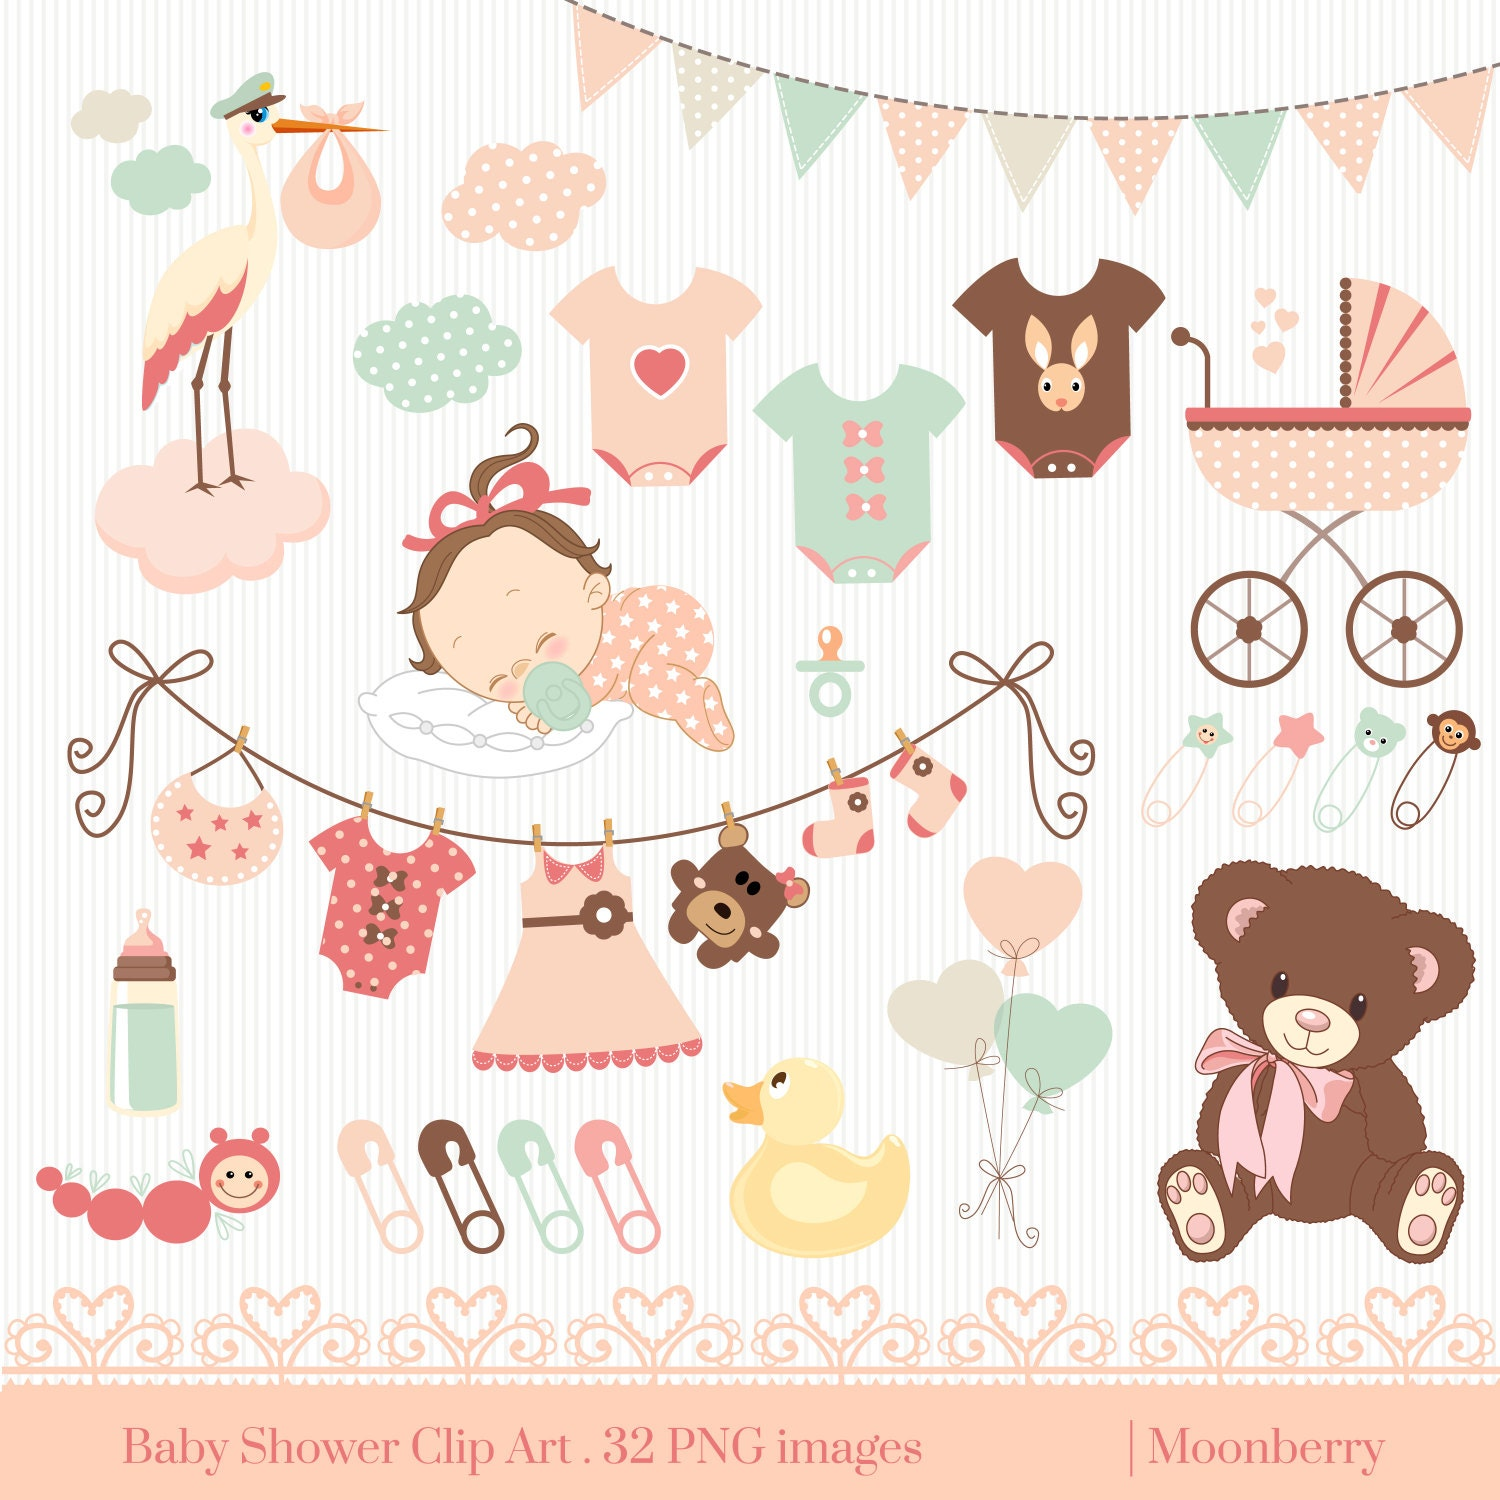 baby shower clip art baby shower clip art baby rh etsy com baby shower images girl clipart Pink Baby Girl Clip Art